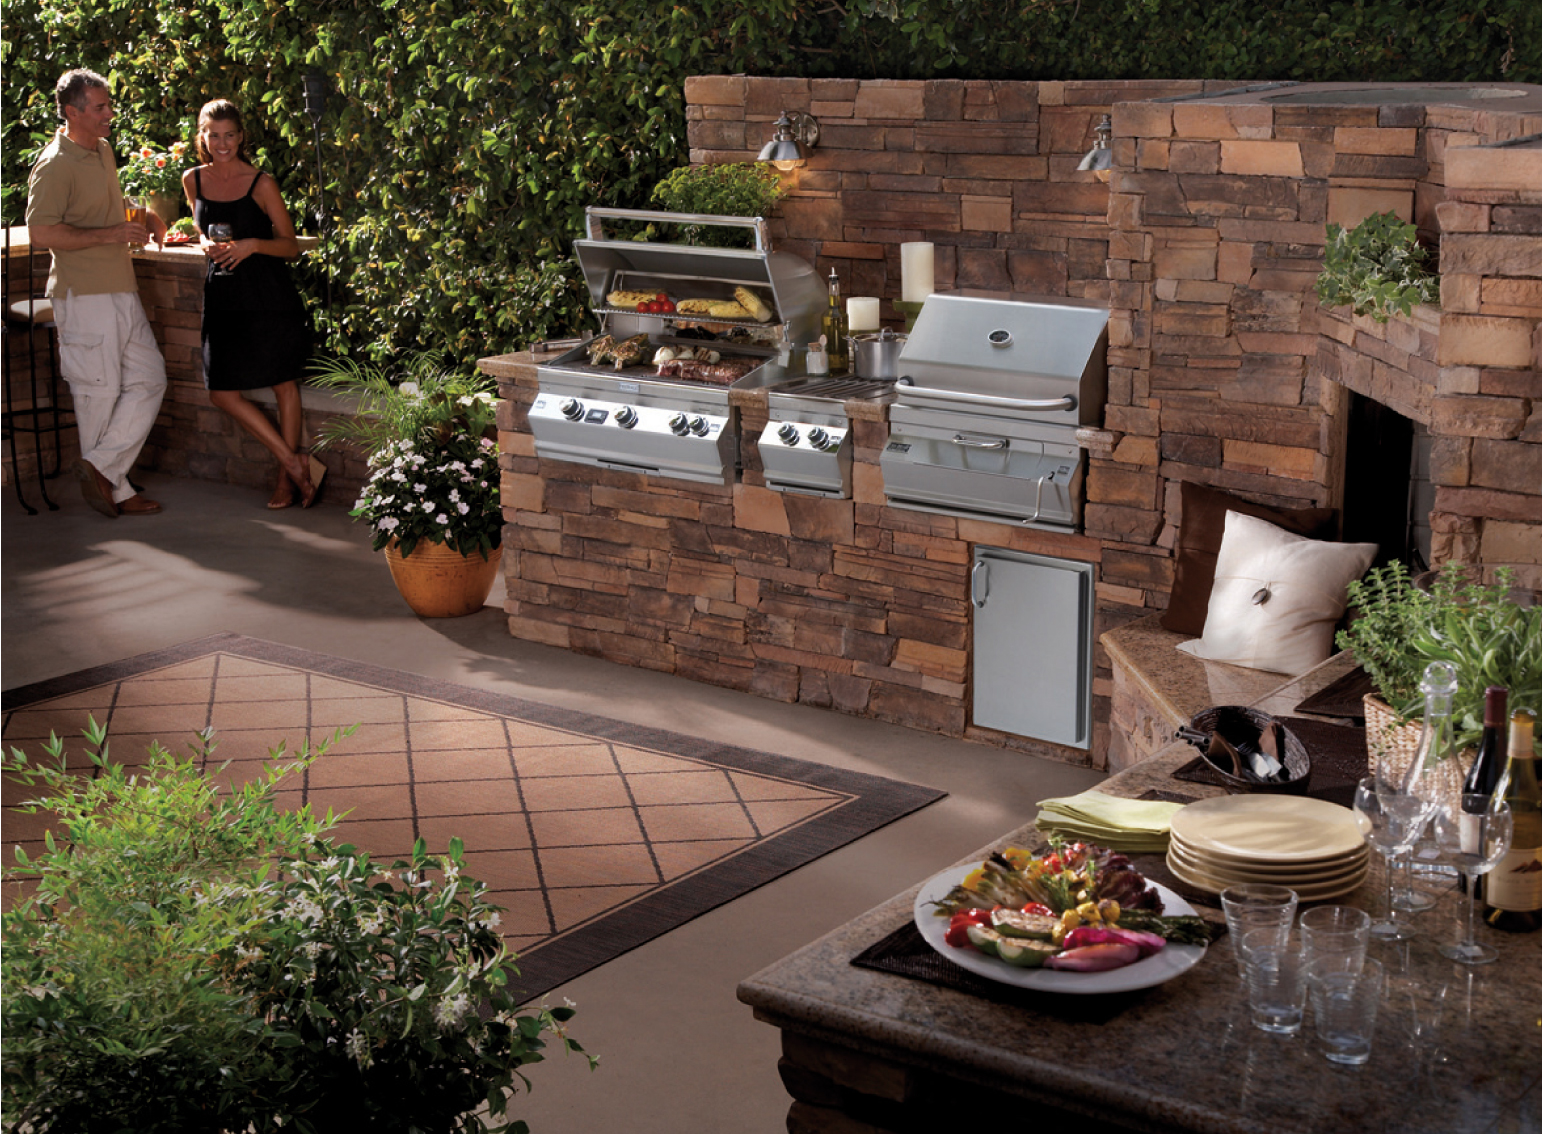 Ultimate outdoor kitchens cook dine entertain al fresco for Exterior kitchen ideas